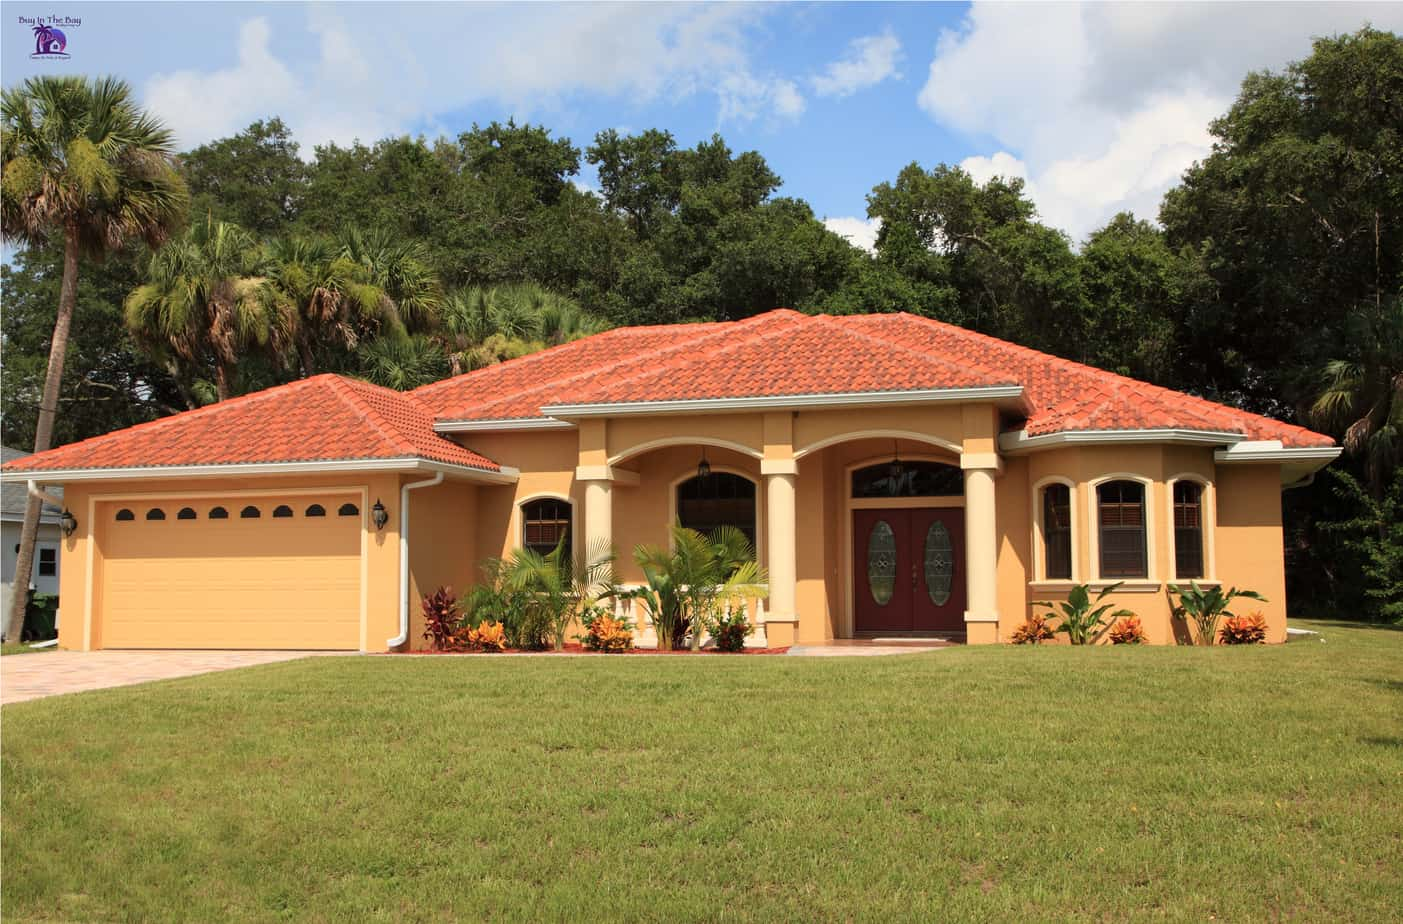 yellow one story home with red tile barrel roof similar to a home in Mango Florida